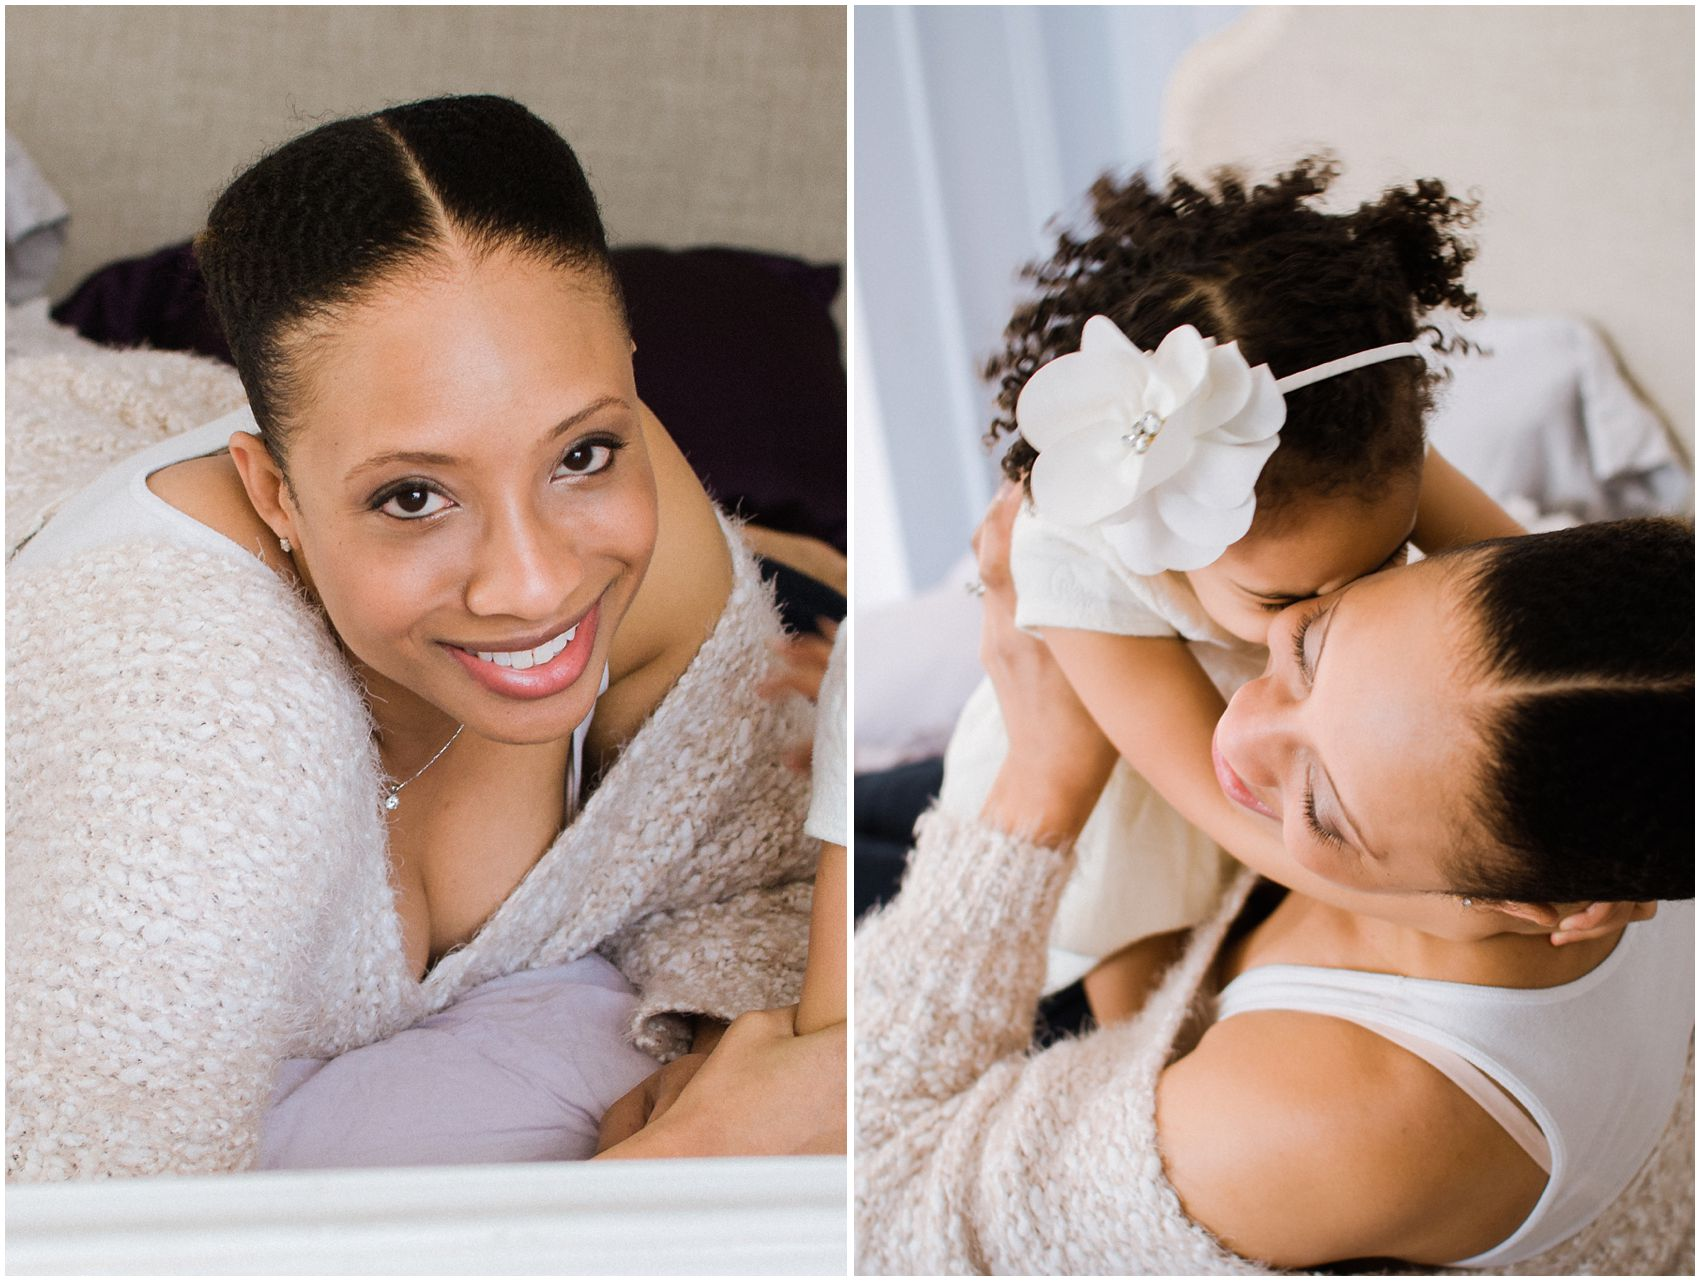 mother and daughter lifestyle portaits at home in New York